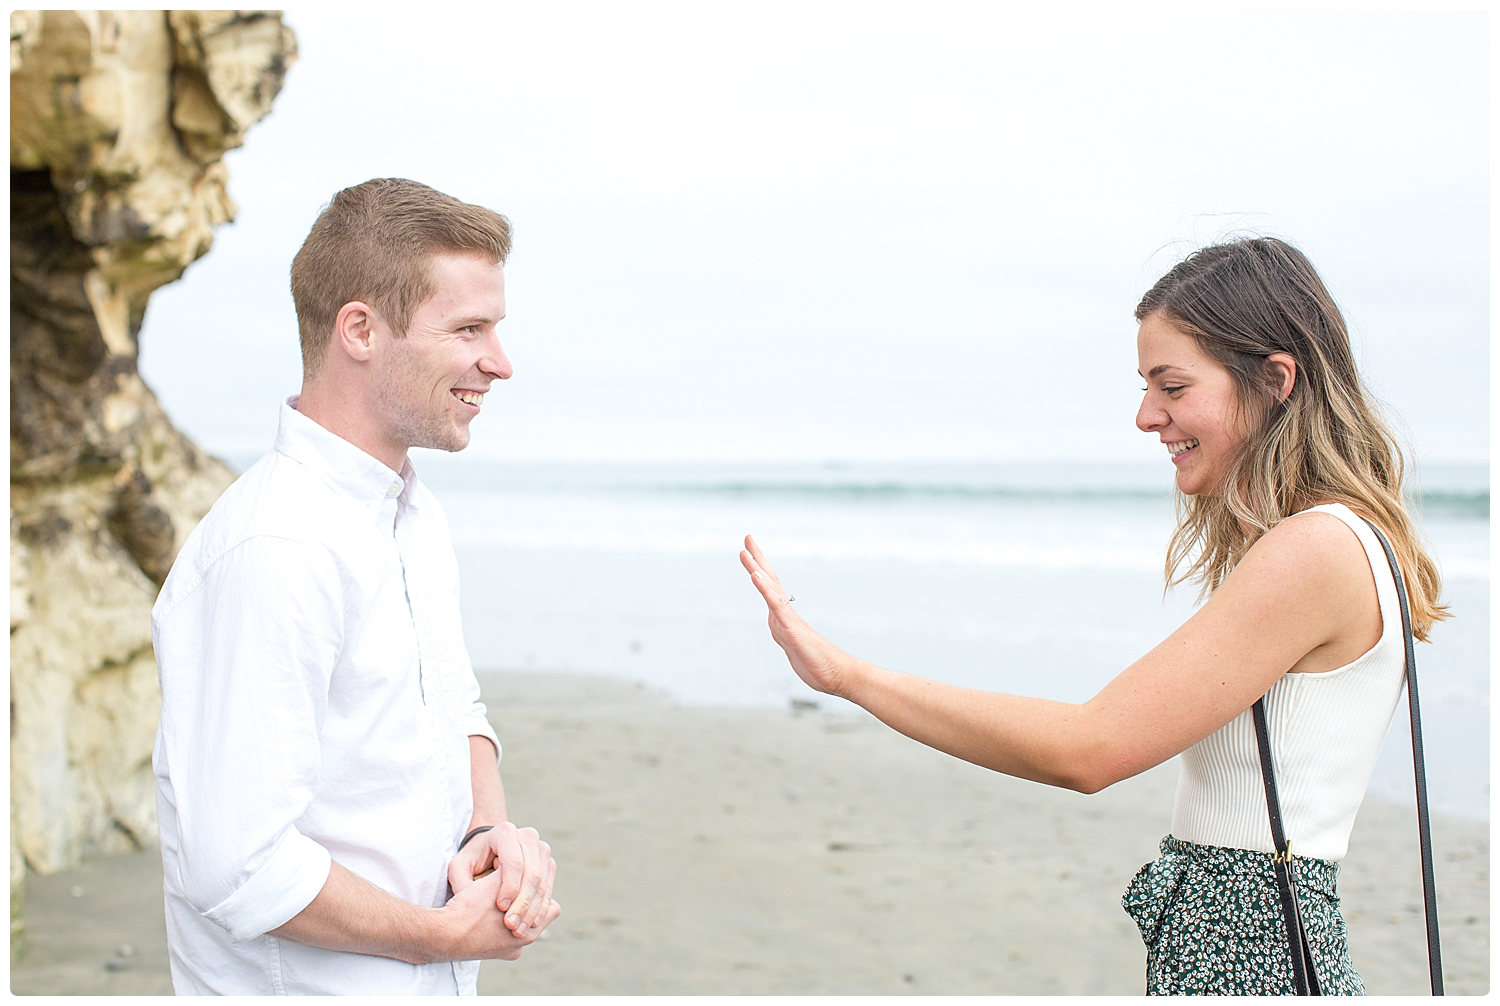 061919_EthanEmma_proposal_Renoda Campbell Photography-7339.jpg